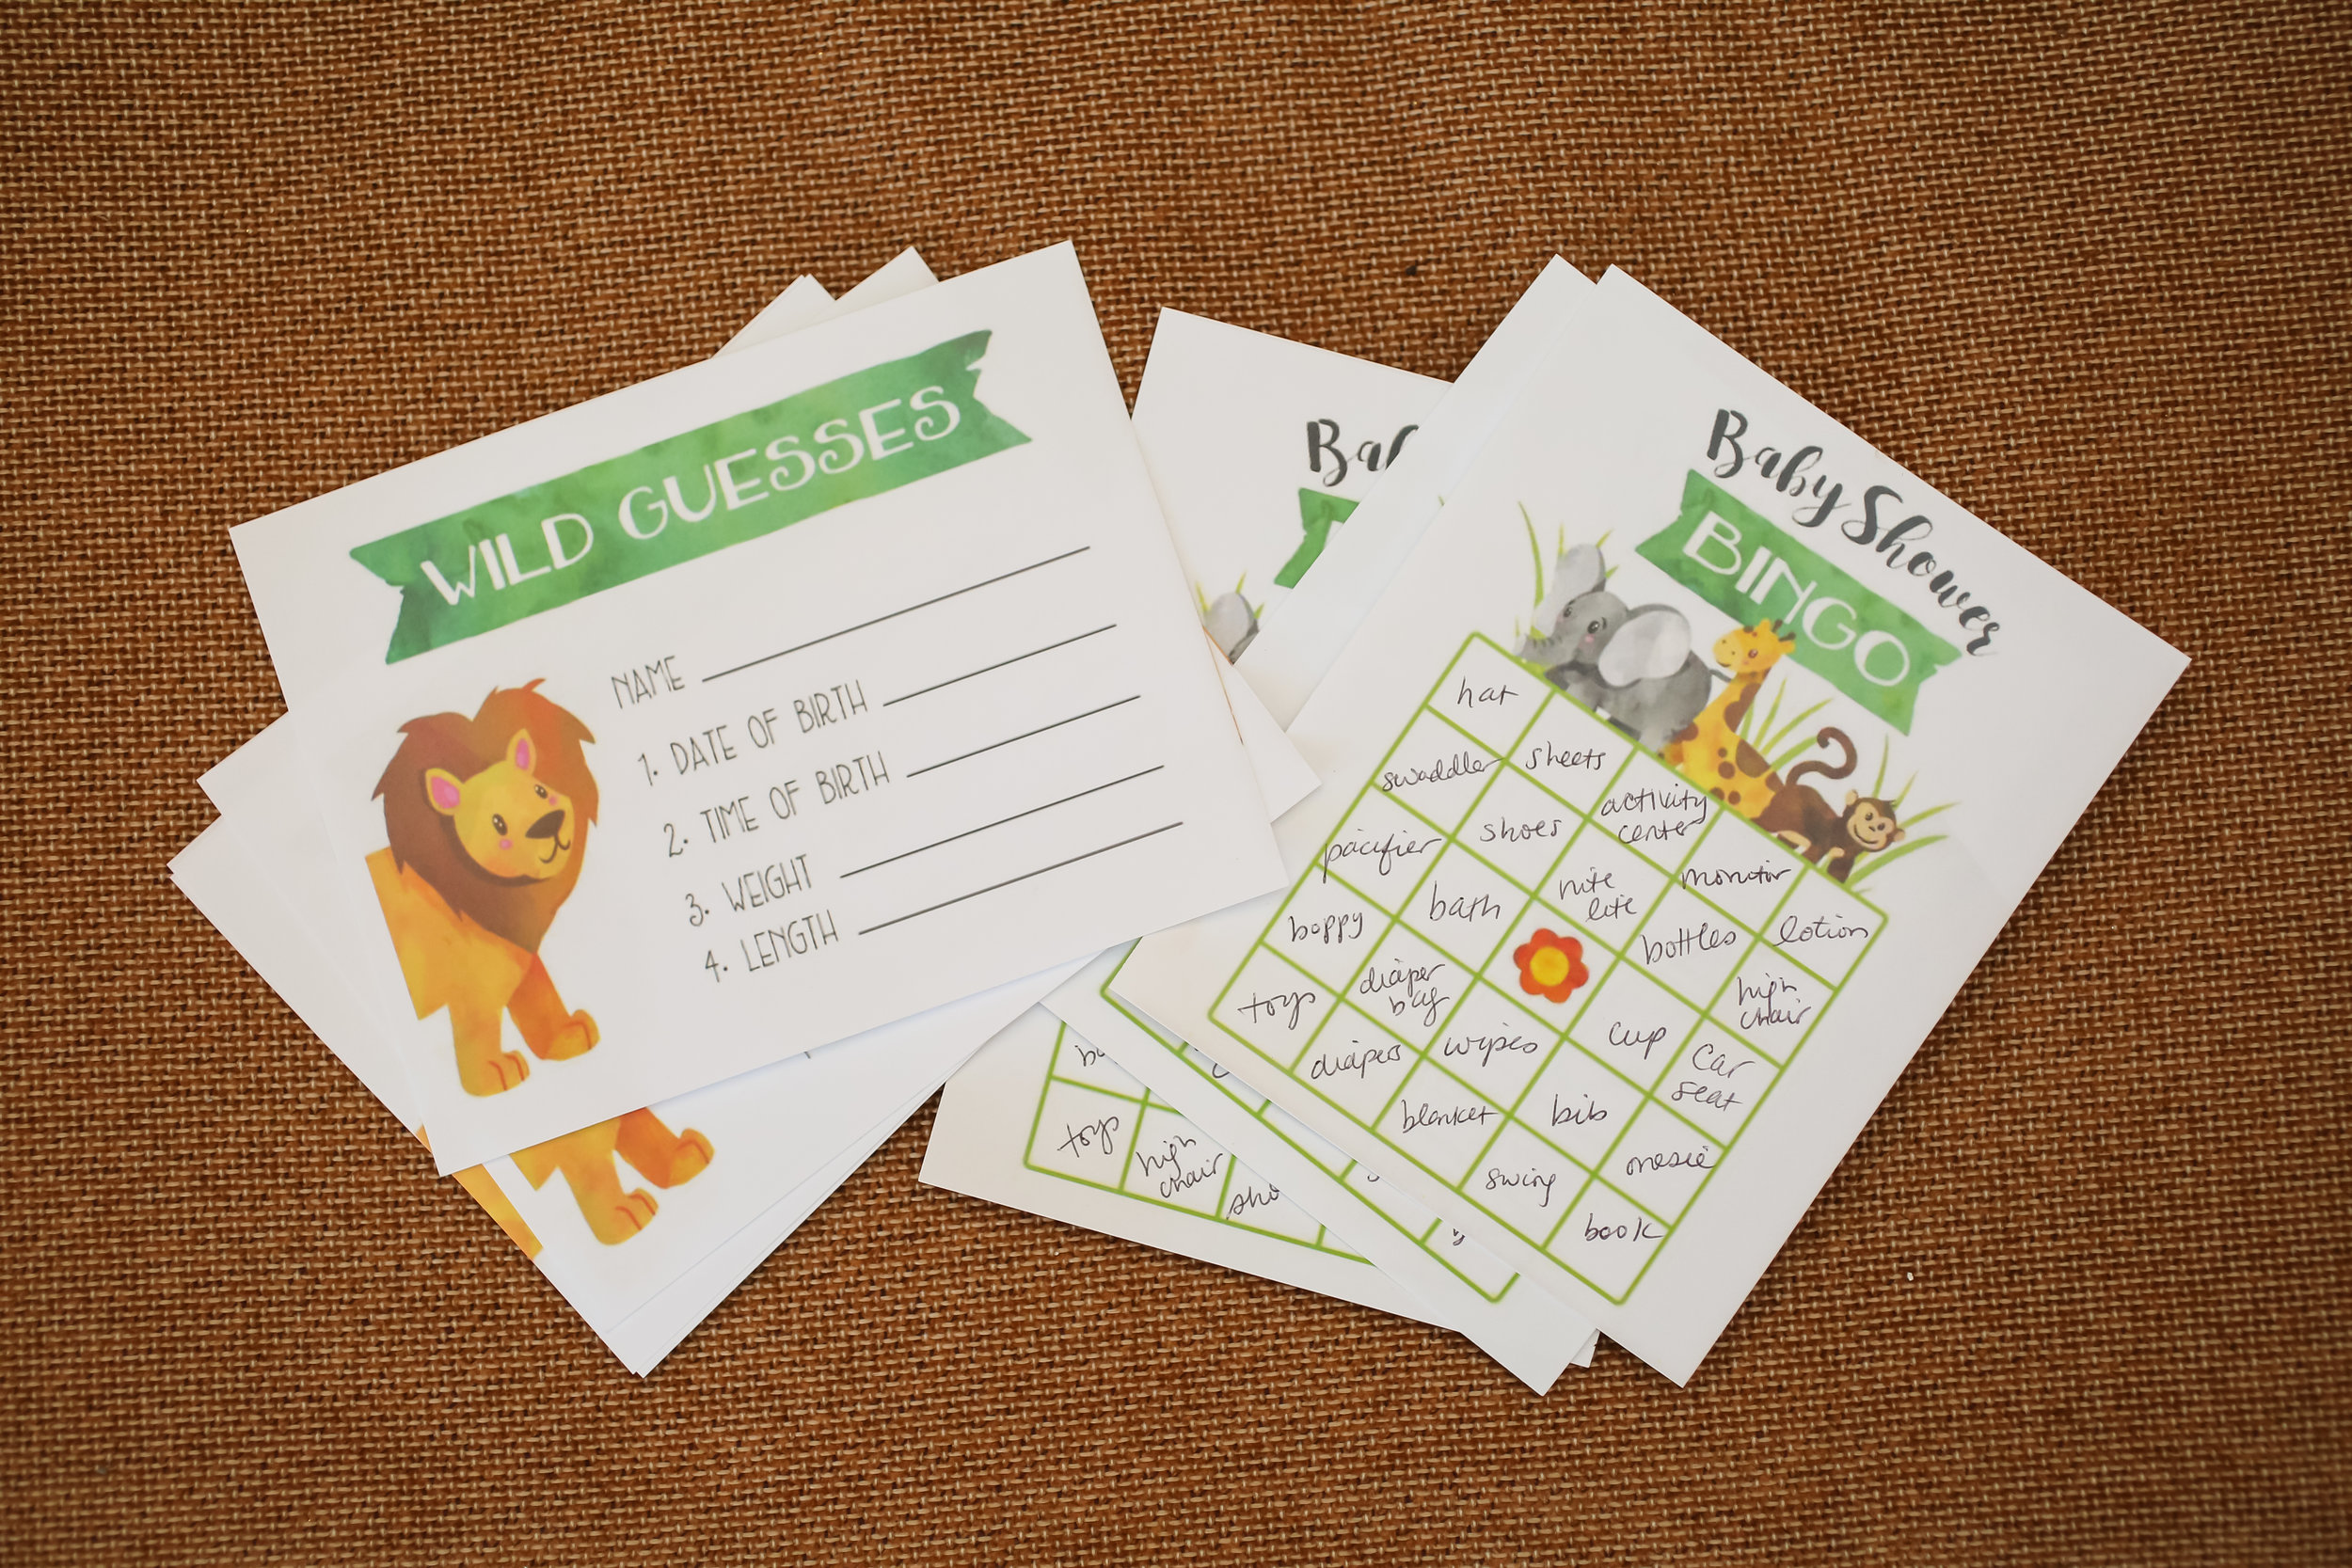 Coordinating stationery pieces included 'Wild Guesses' cards and Gift Bingo!